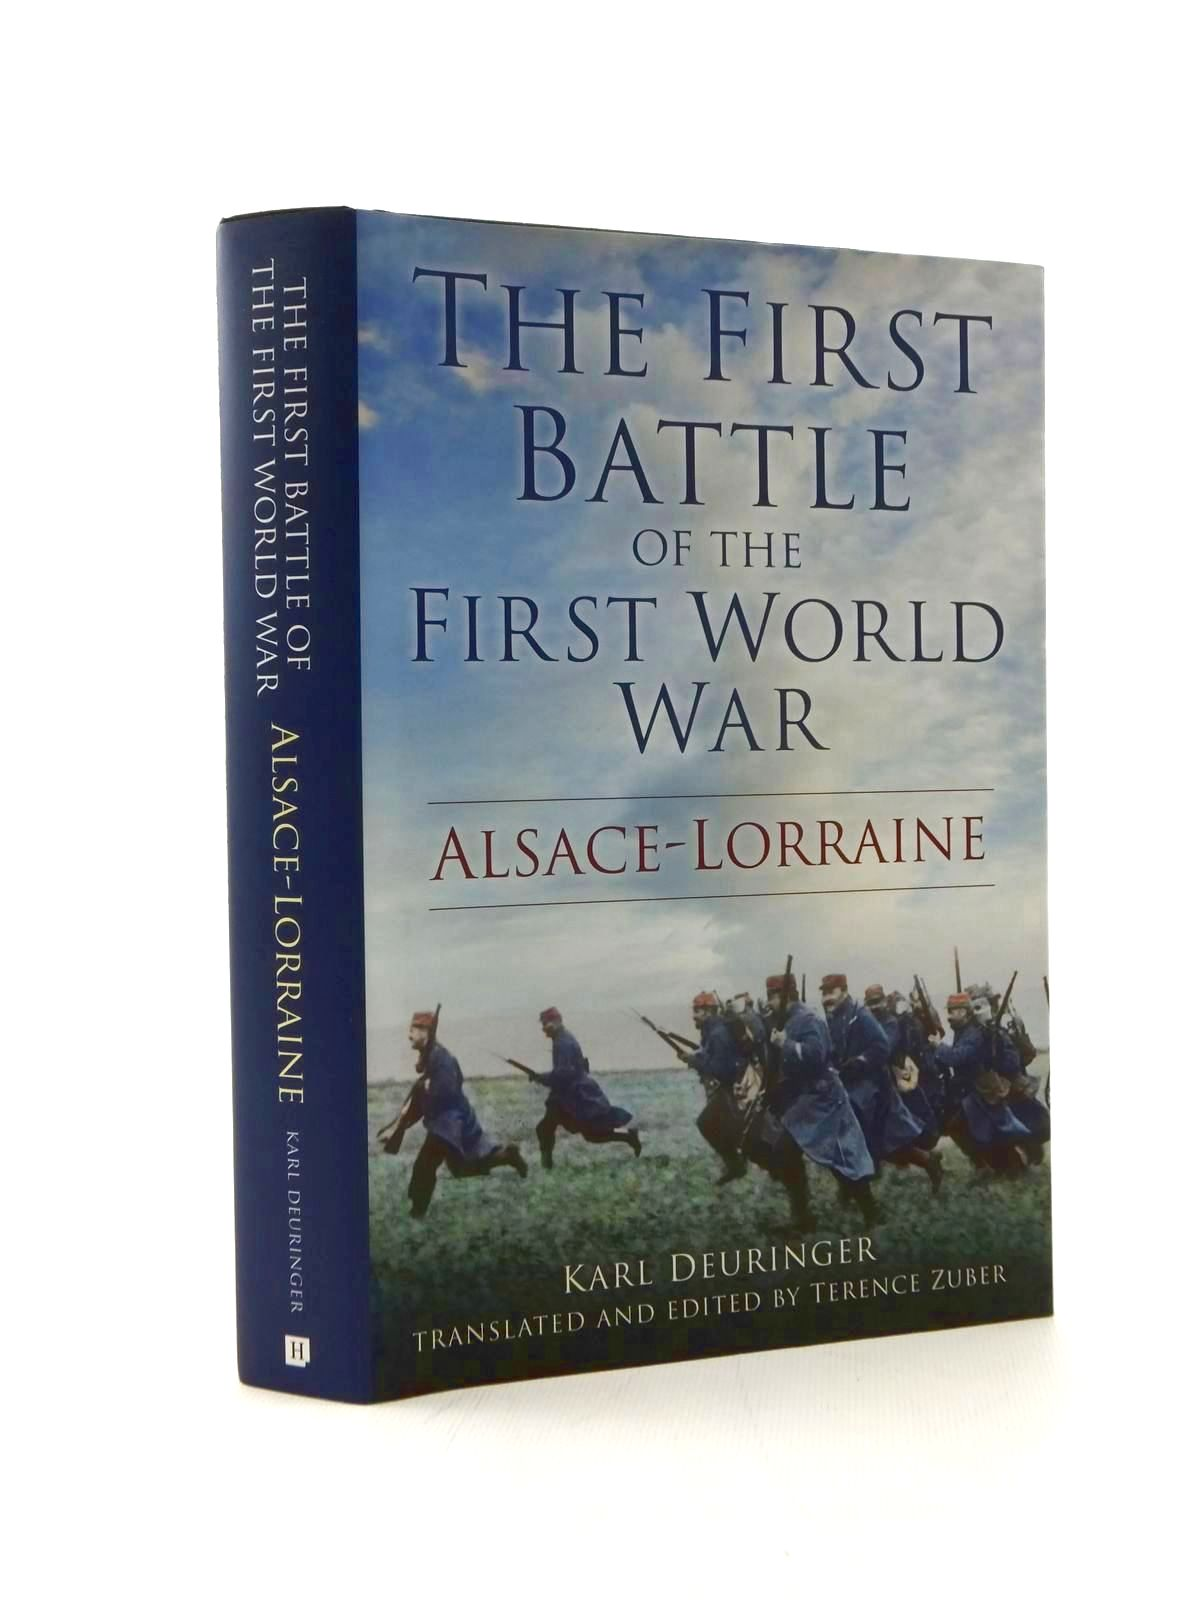 Photo of THE FIRST BATTLE OF THE FIRST WORLD WAR ALSACE-LORRAINE written by Deuringer, Karl Zuber, Terence published by The History Press (STOCK CODE: 2123349)  for sale by Stella & Rose's Books